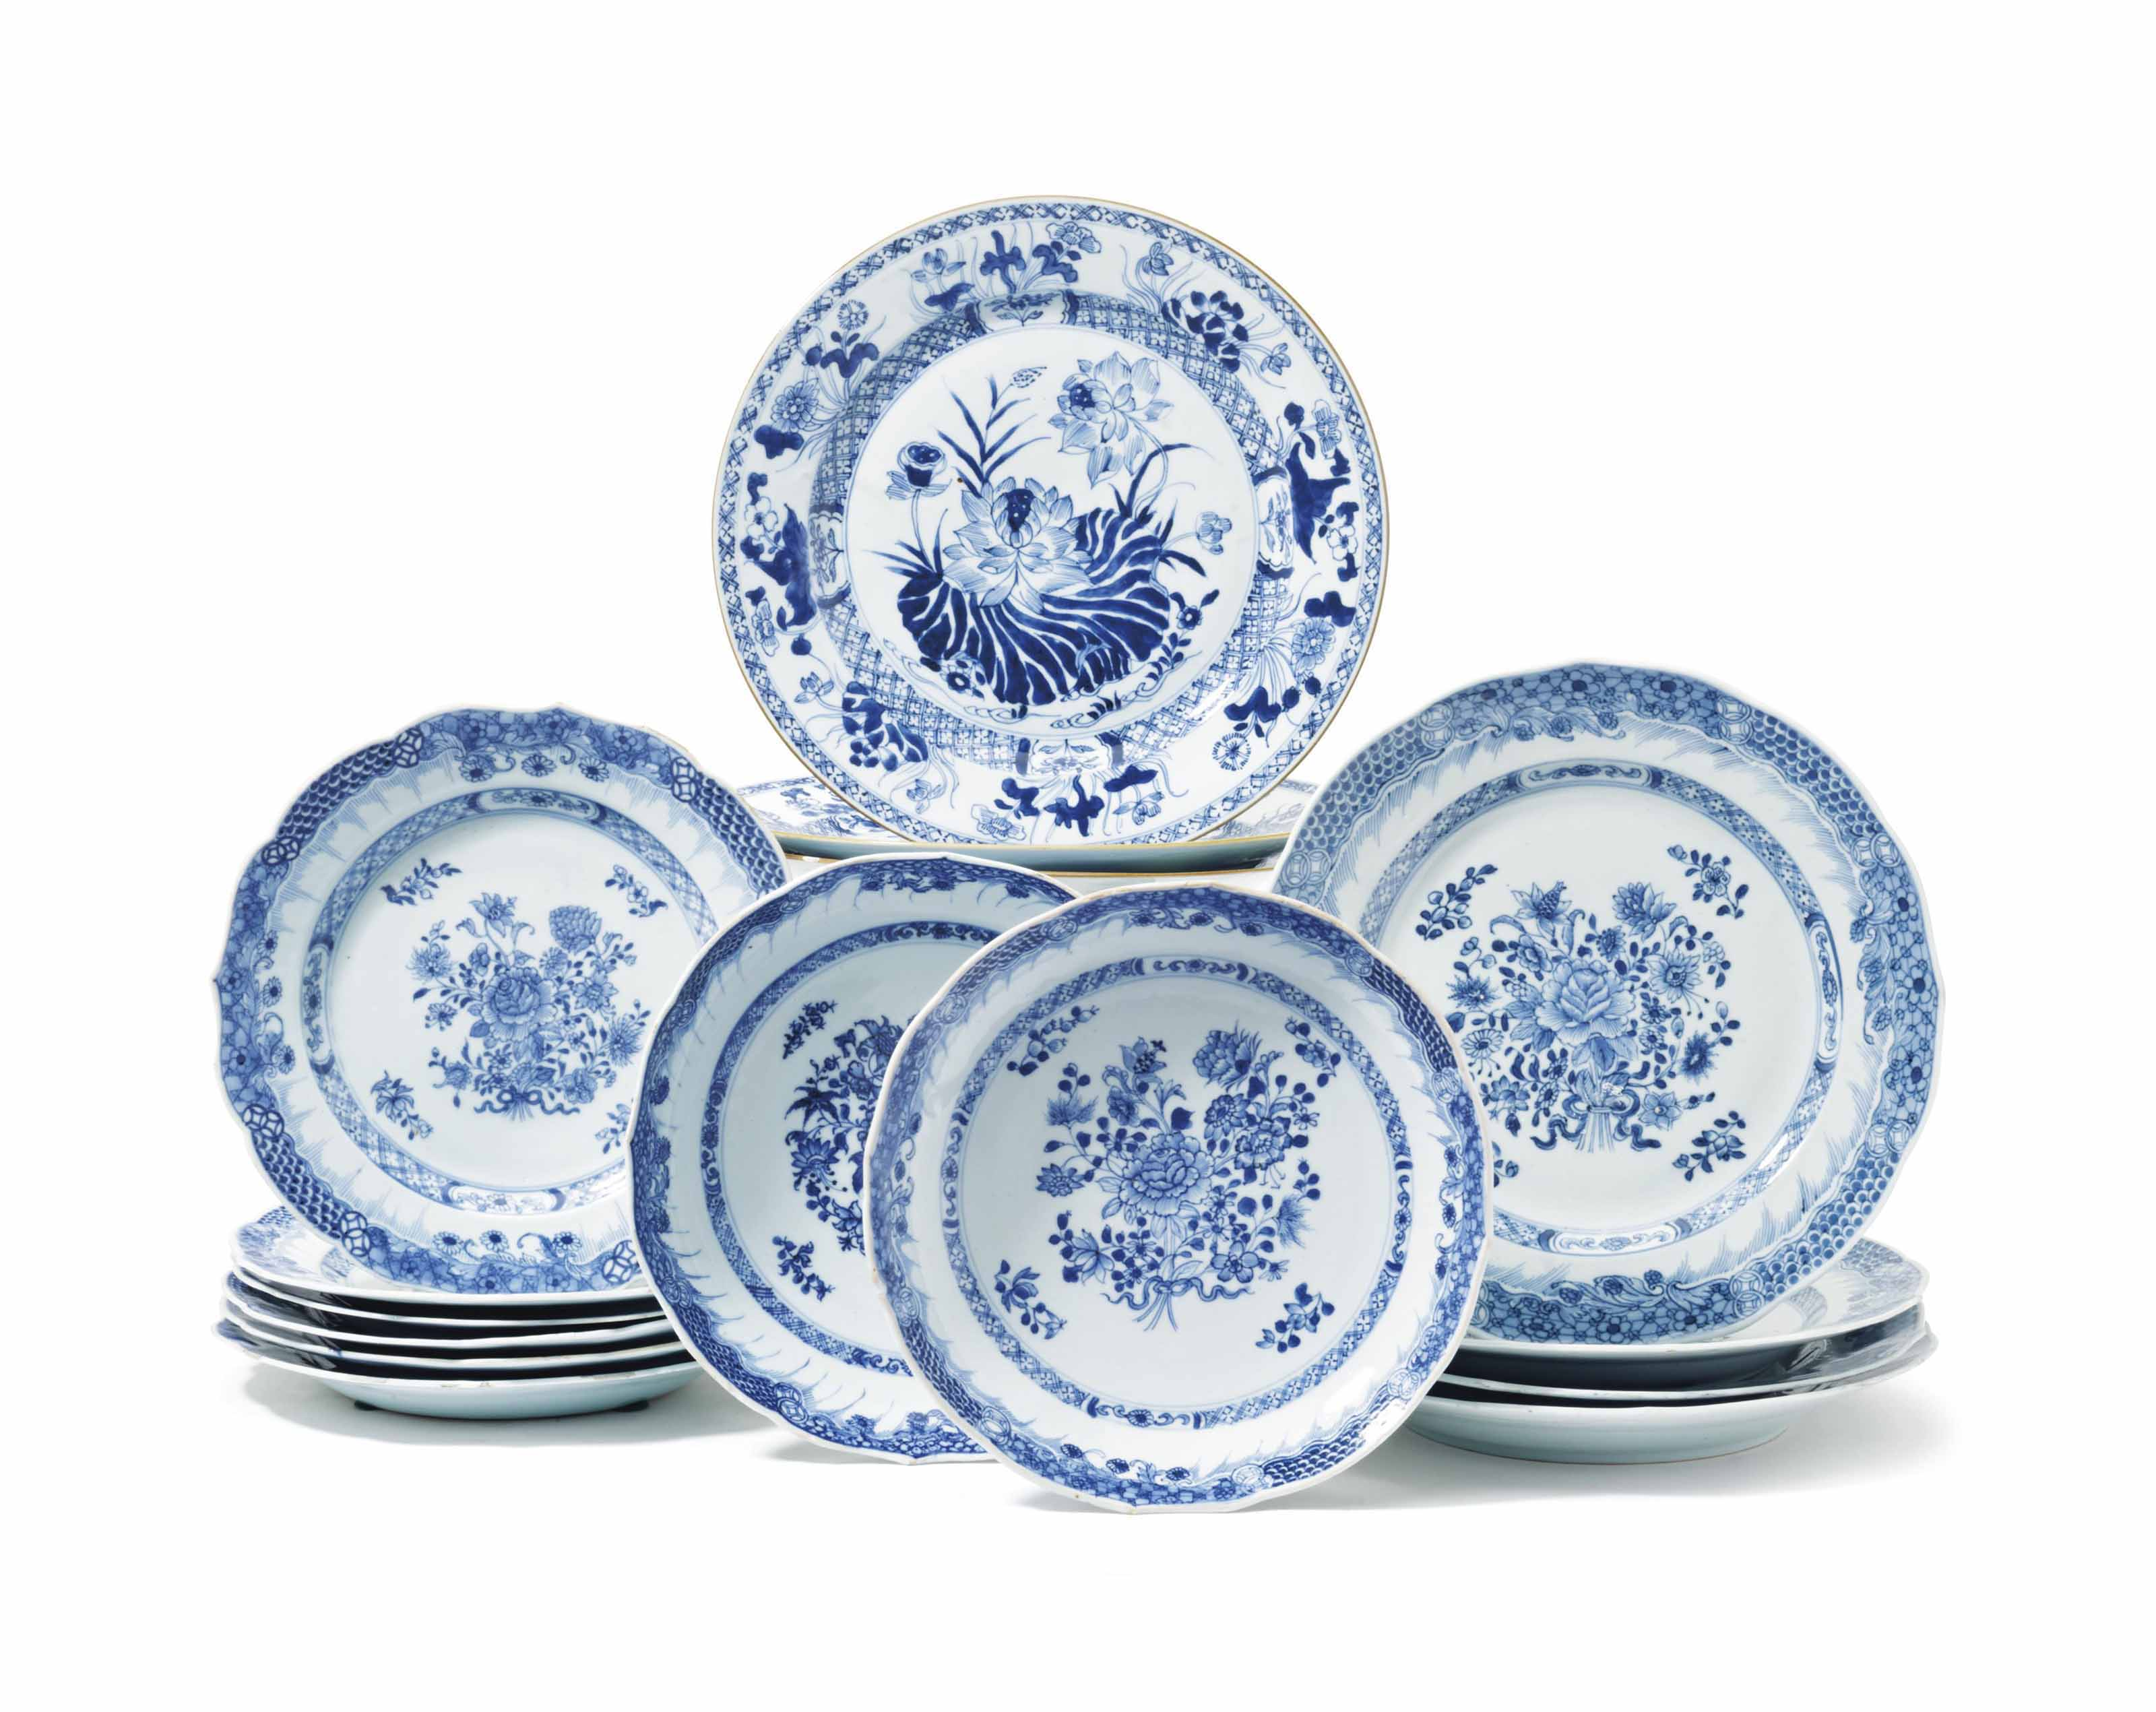 AN ASSEMBLED SET OF CHINESE BLUE AND WHITE DISHES